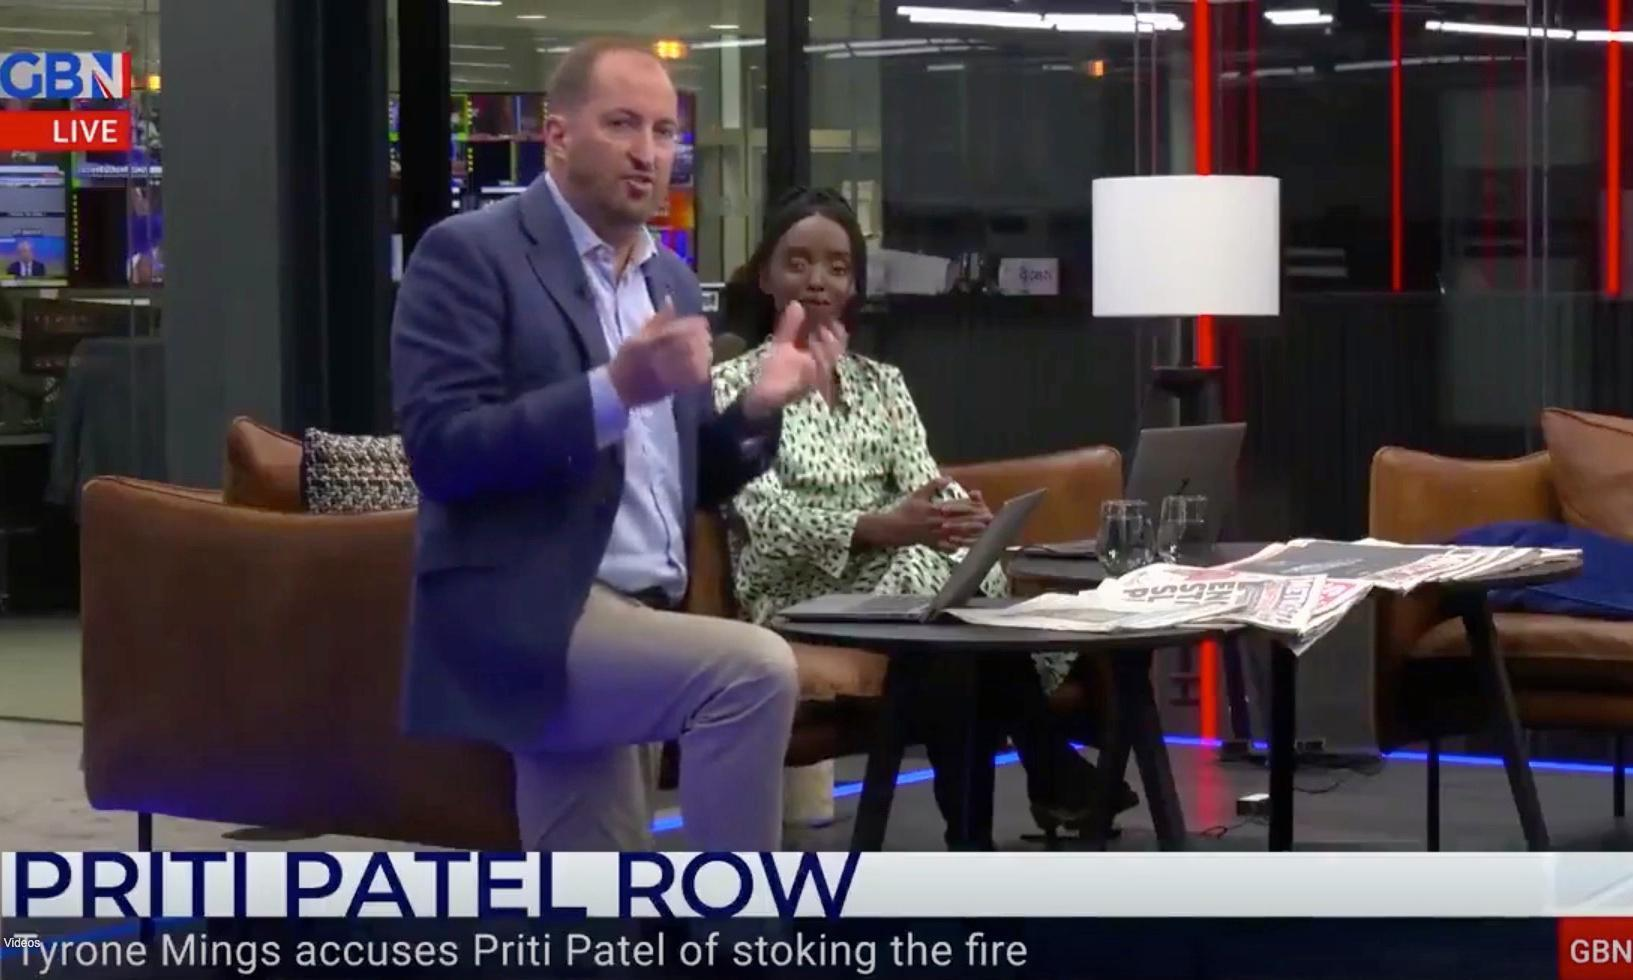 GB News shows attracted zero viewers after boycott over taking the knee